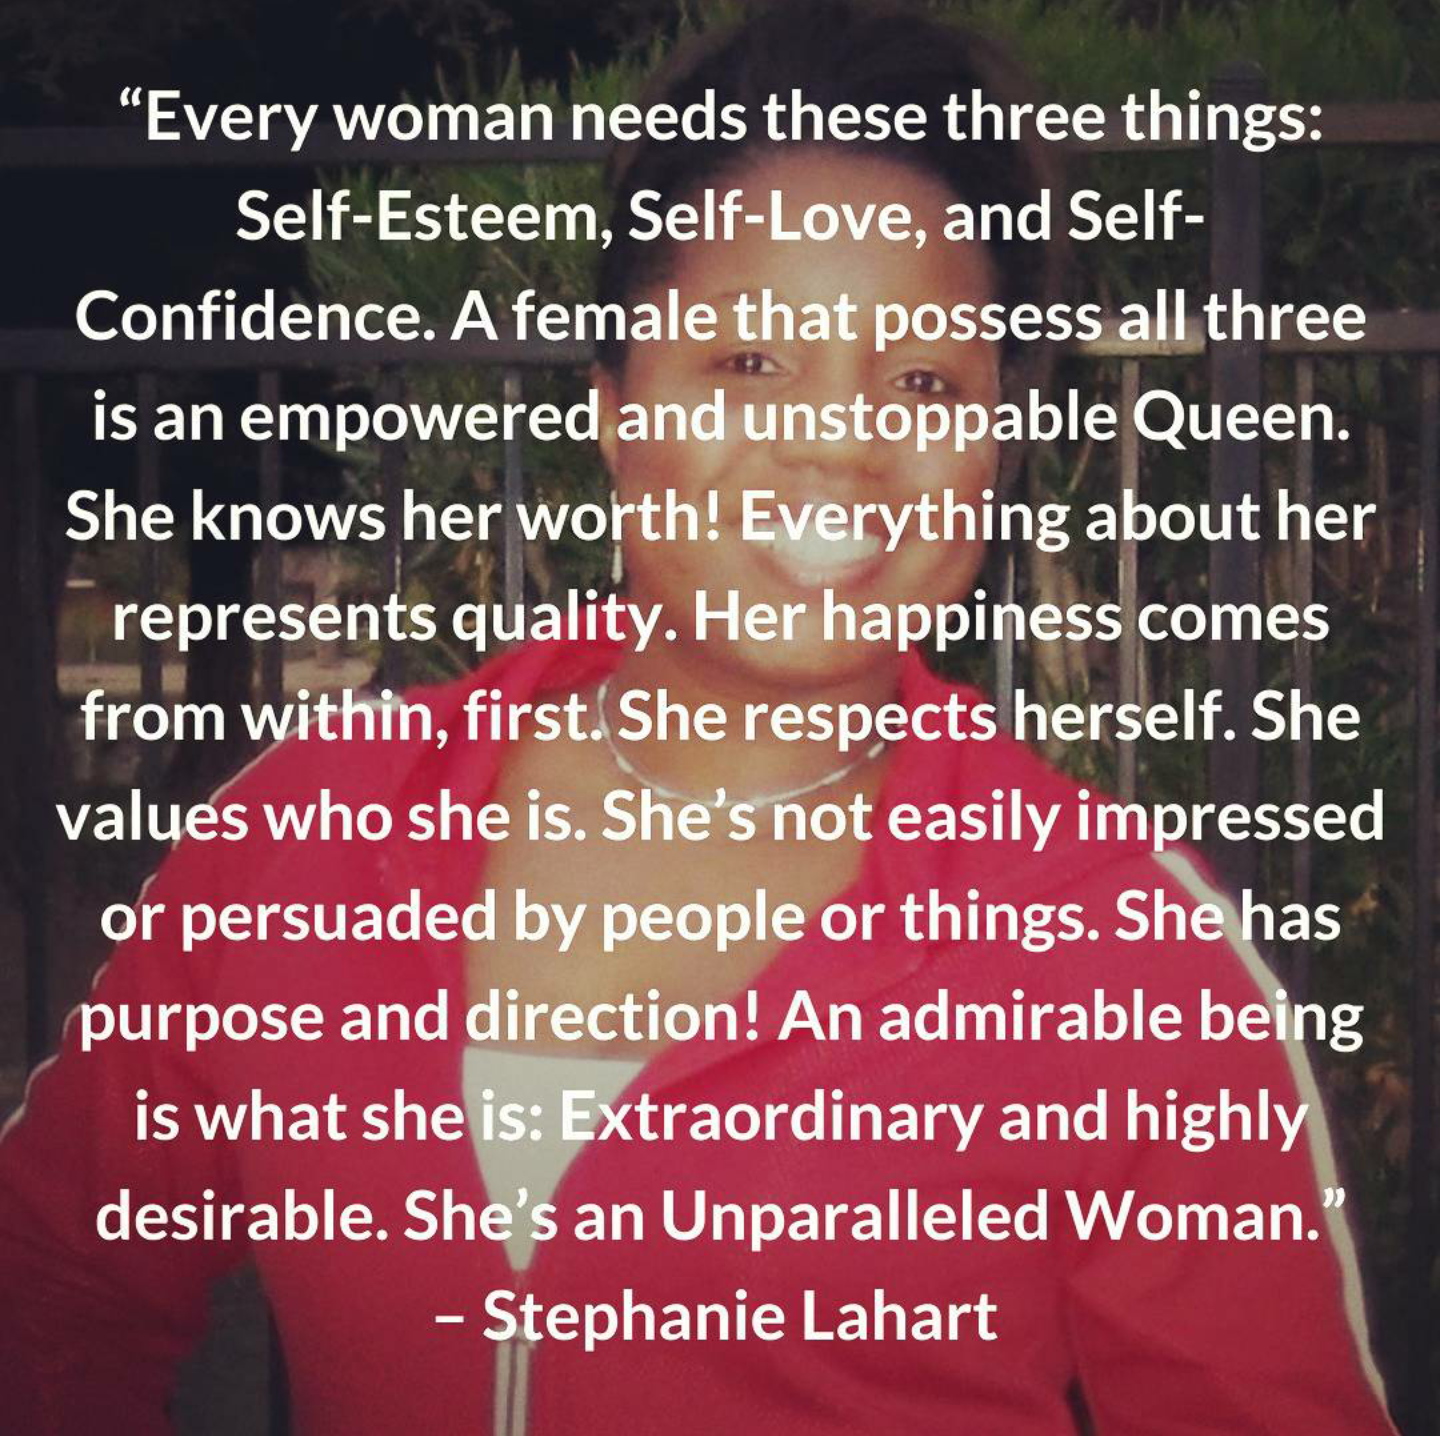 Inspiring and Empowering Quotes for Women and Girls. Self